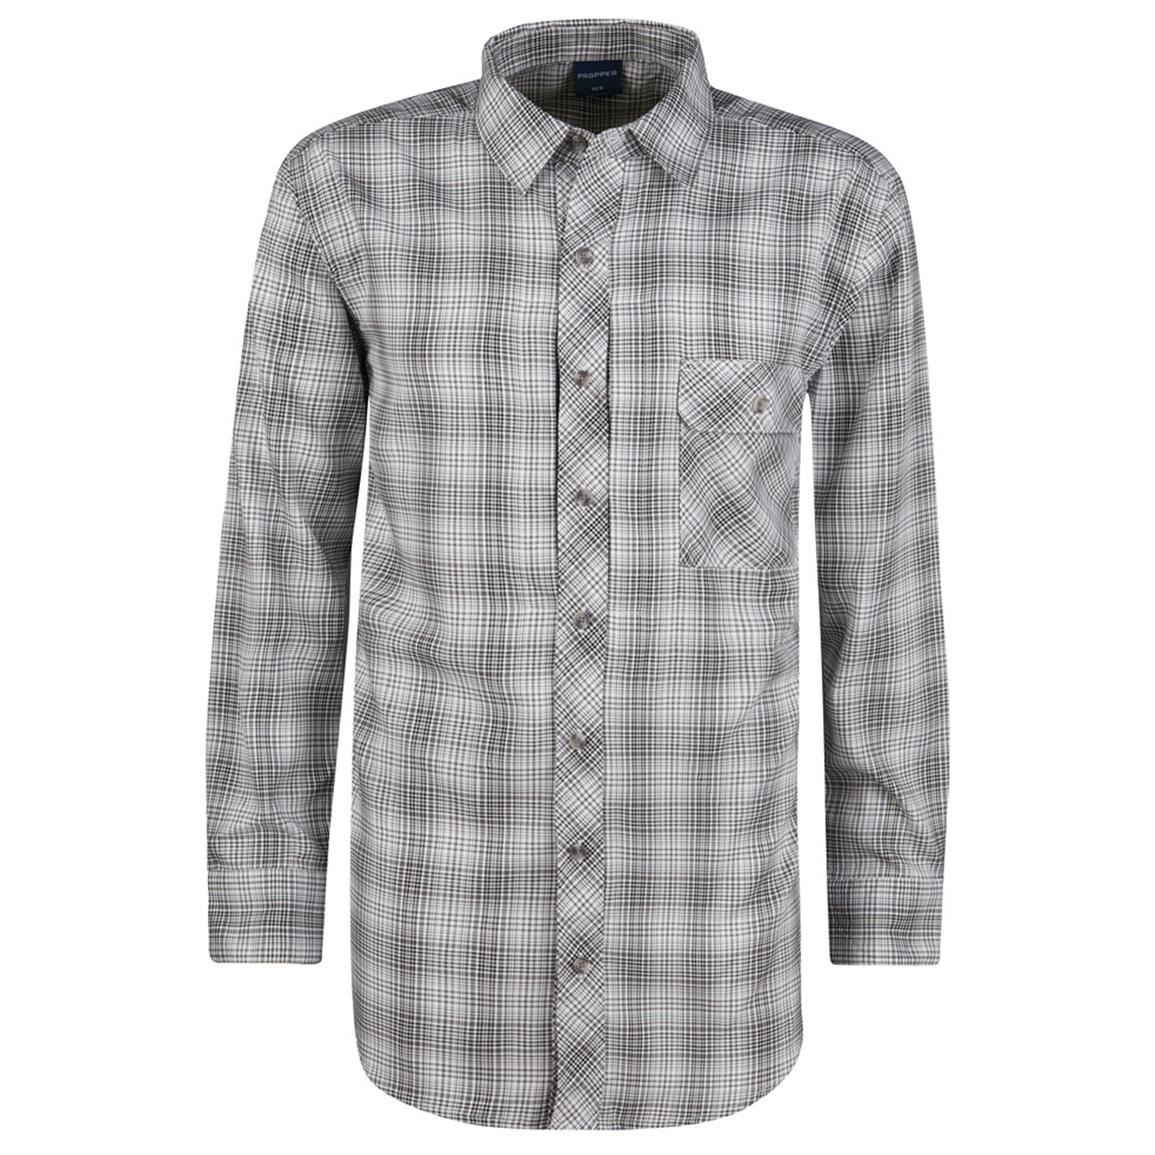 Propper Men's Covert  Button-Up Long Sleeve Shirt, Steel Gray, STEEL GREY PLAID